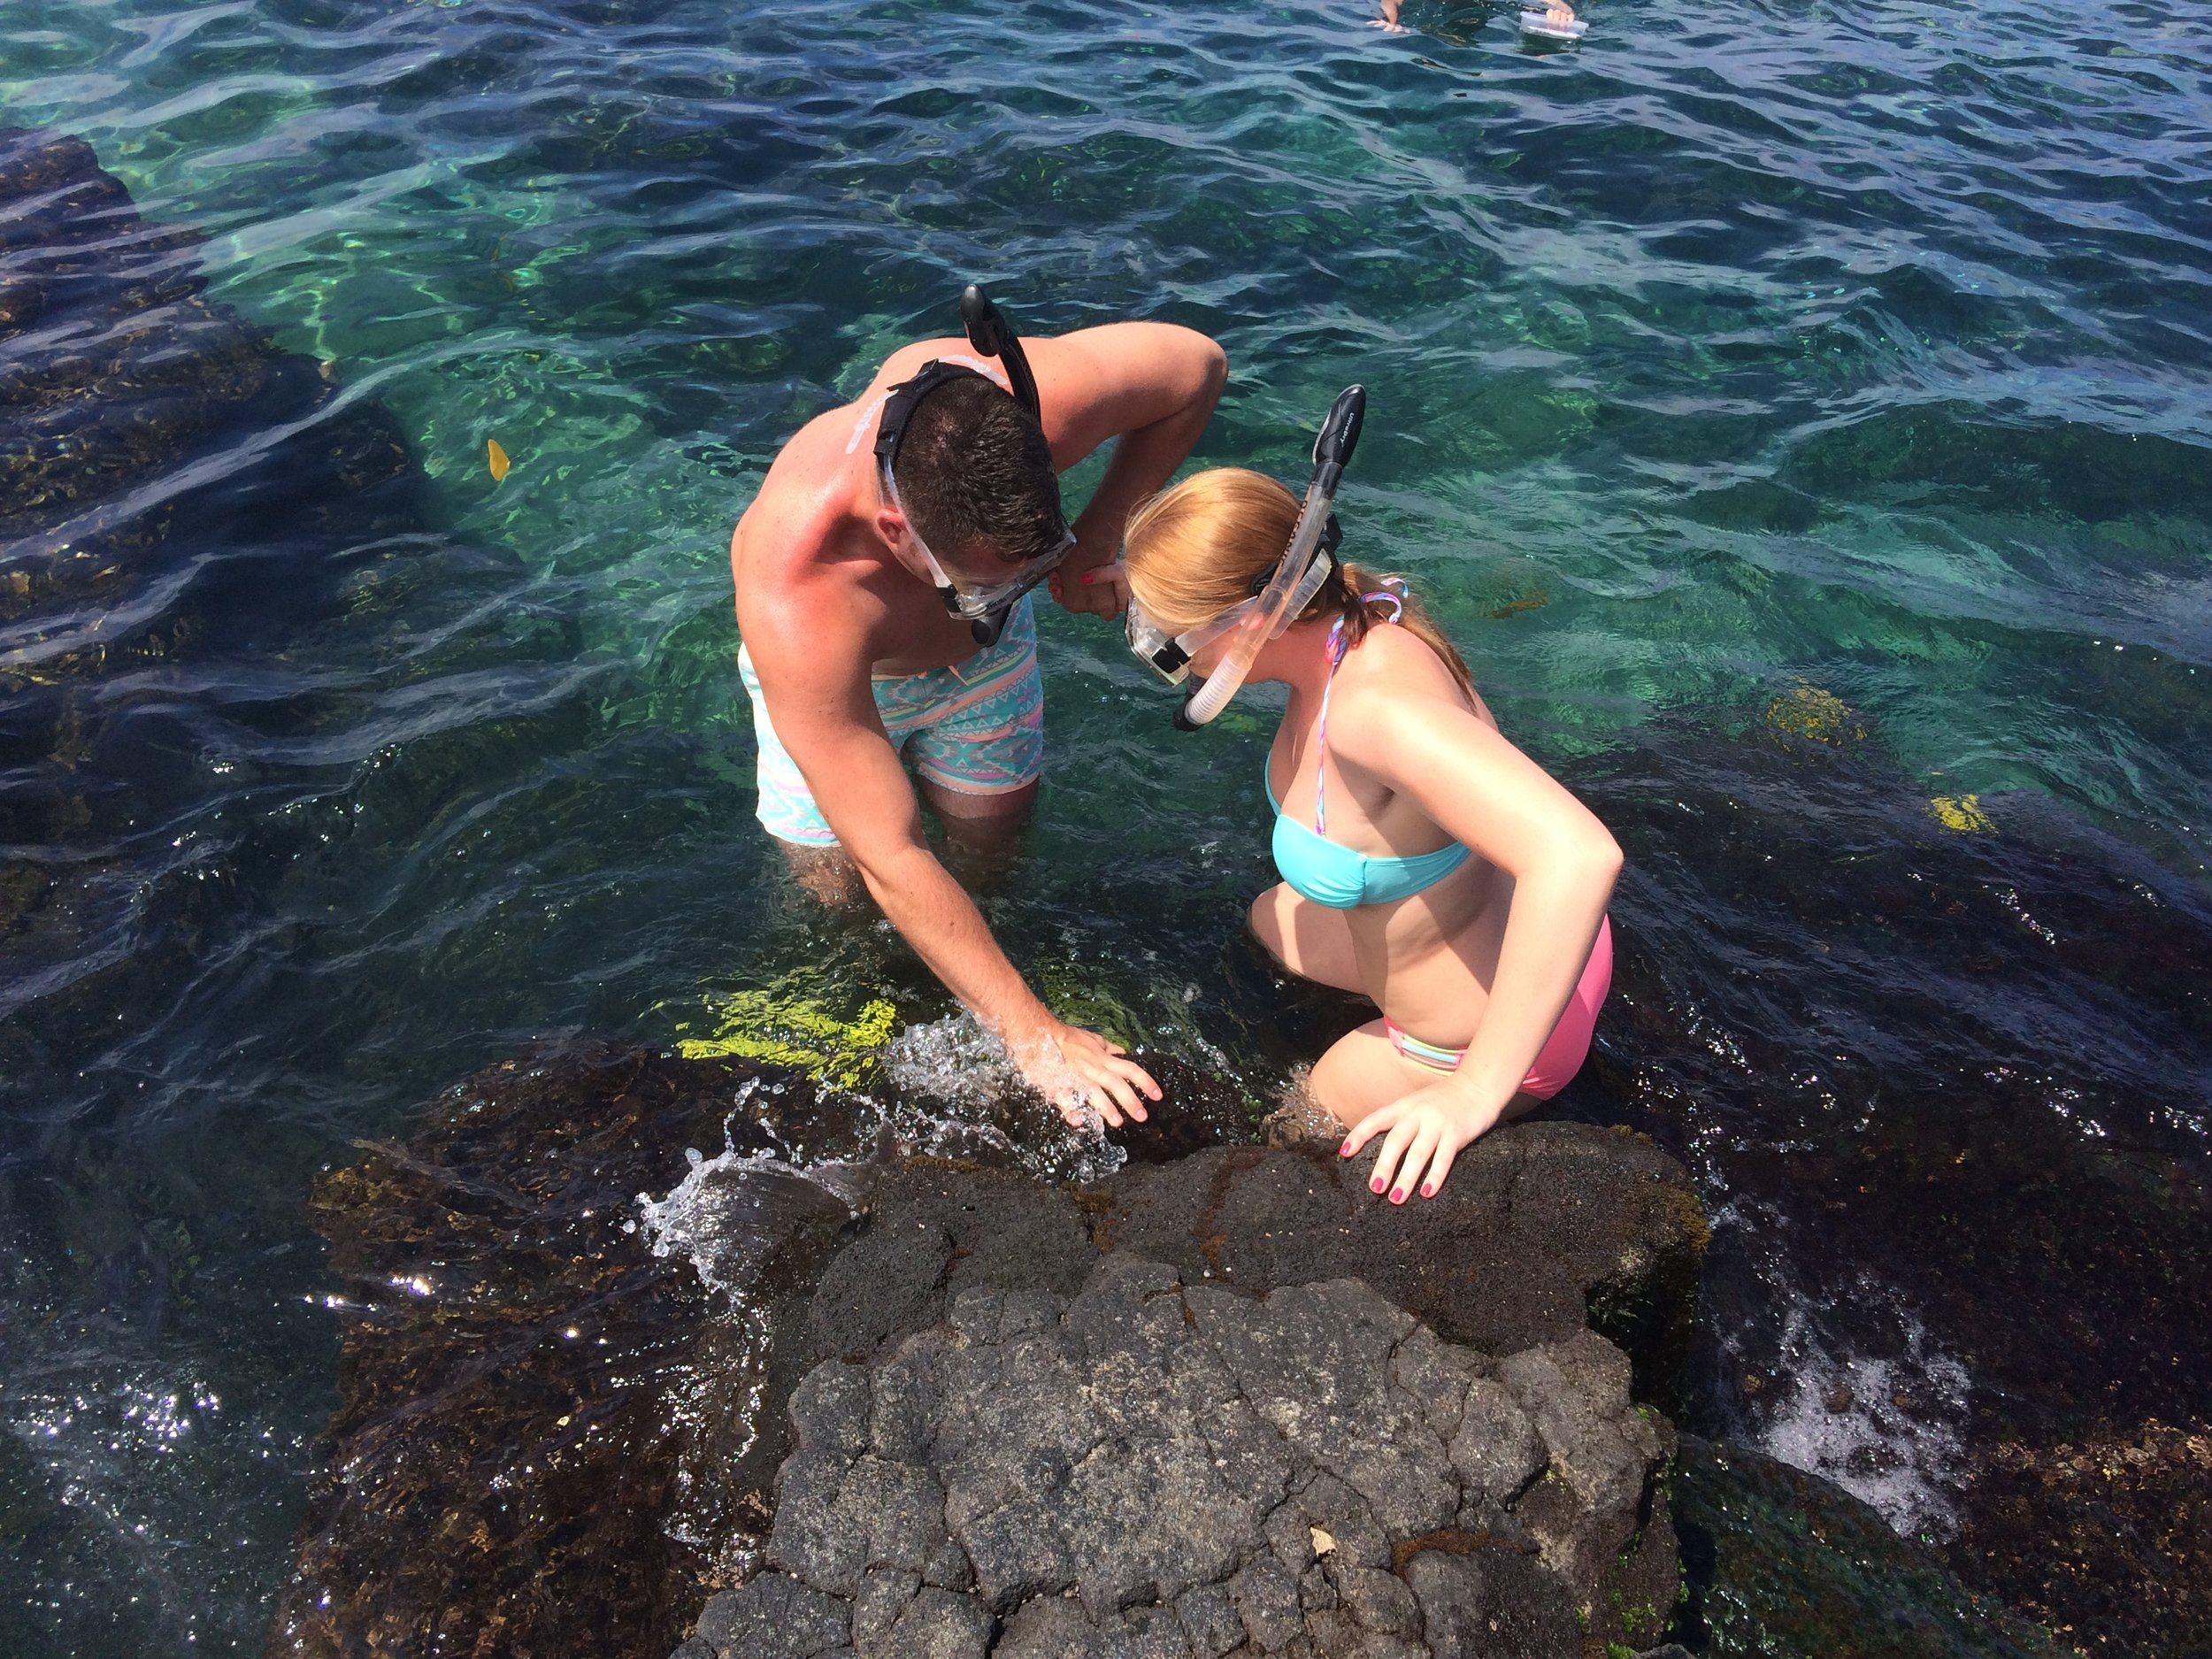 Snorkeling at Two Step in Hawaii